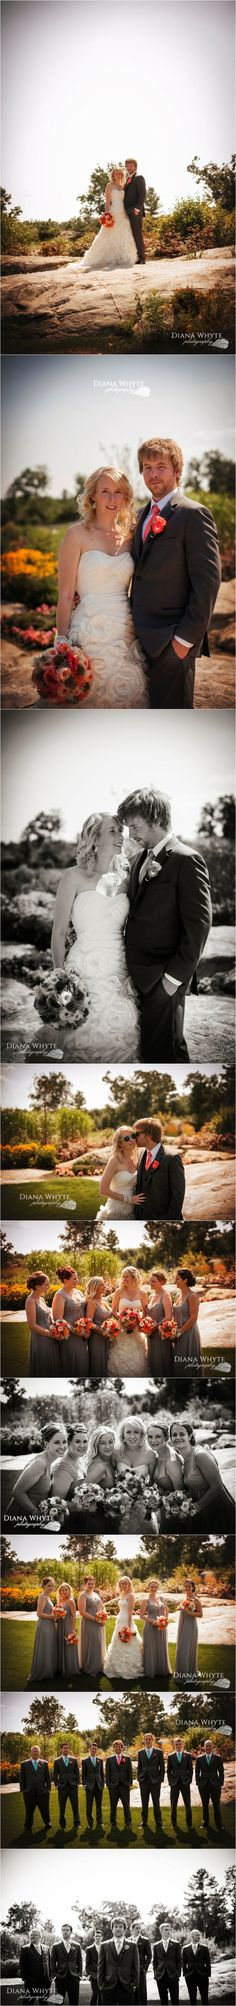 bride and groom bridal portraits Gravenhurst Wedding Photographer Diana Whyte Photography